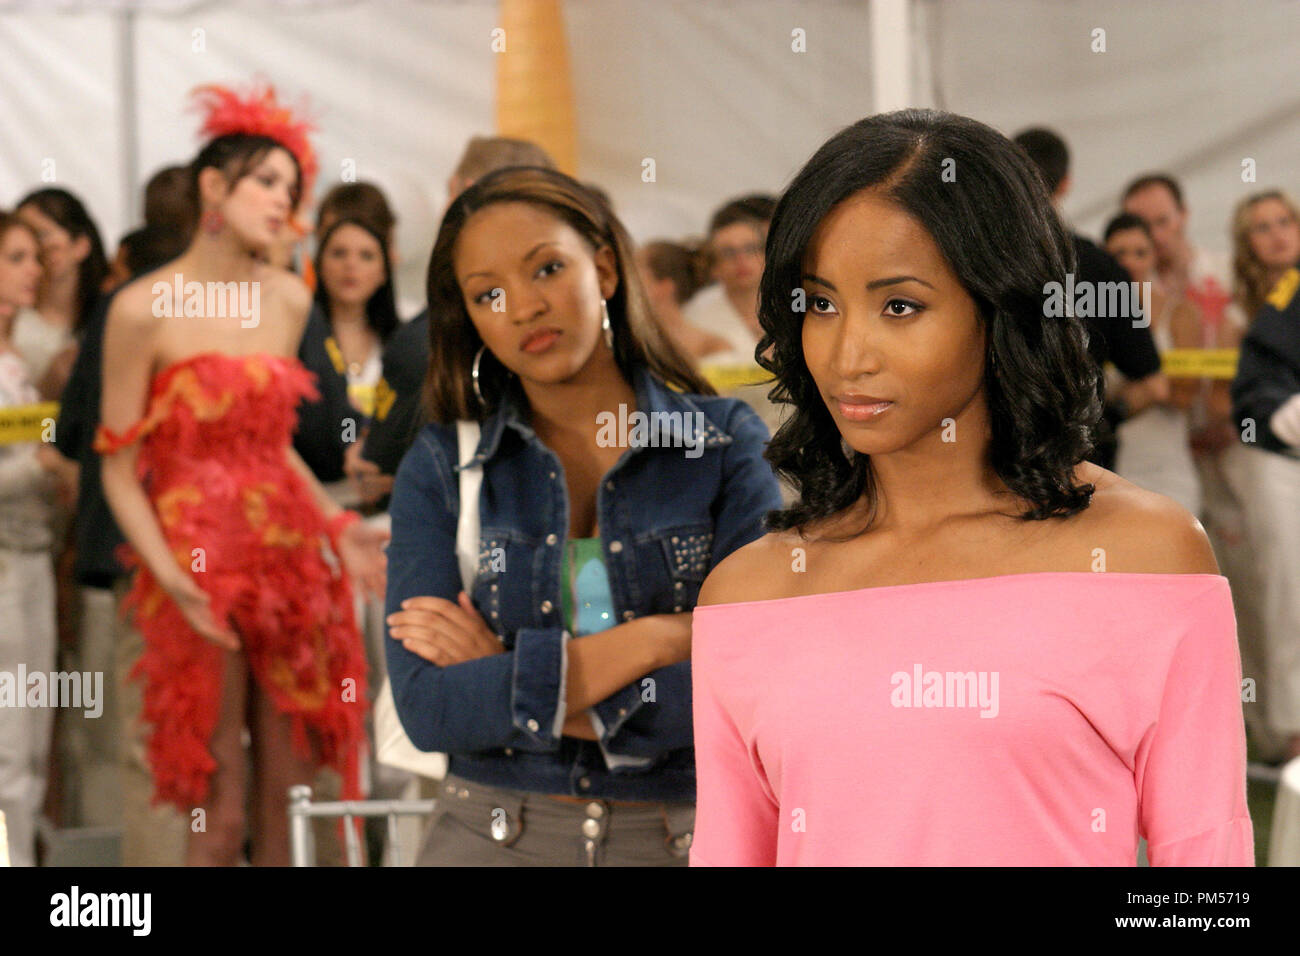 Film Still from 'White Chicks' Drew Sidora © 2004 Revolutions Studios Photo Credit: Joe Lederer  File Reference # 30735143THA  For Editorial Use Only -  All Rights Reserved - Stock Image